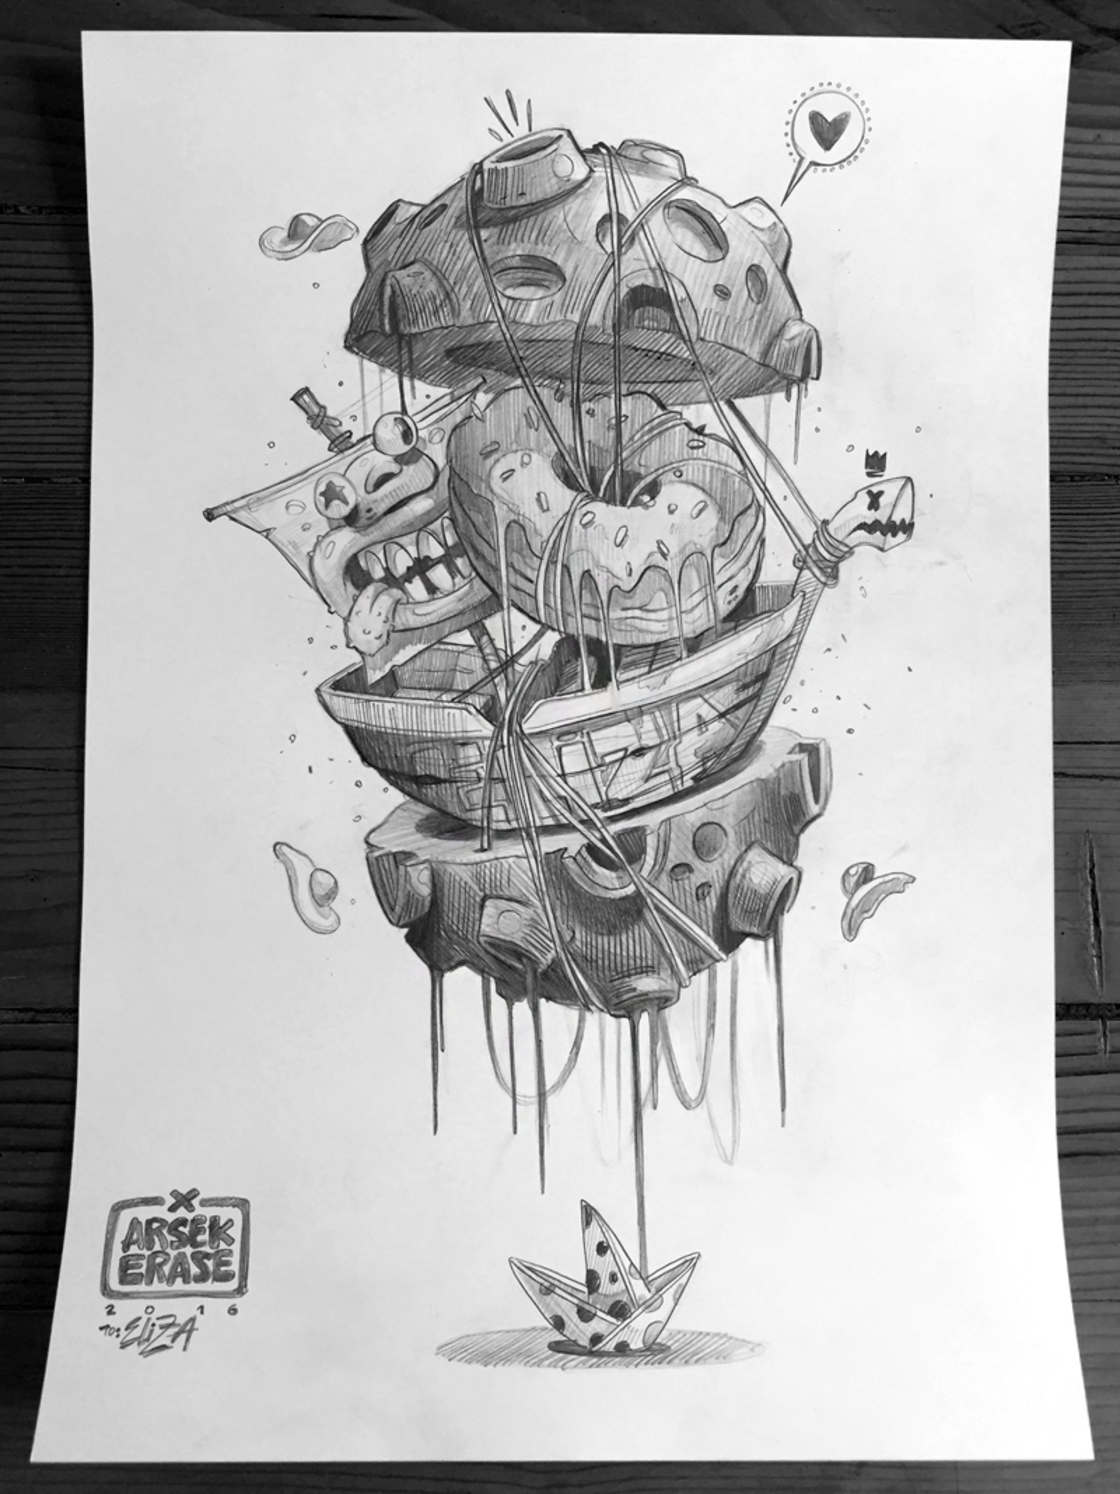 The latest illustrations from ERASE